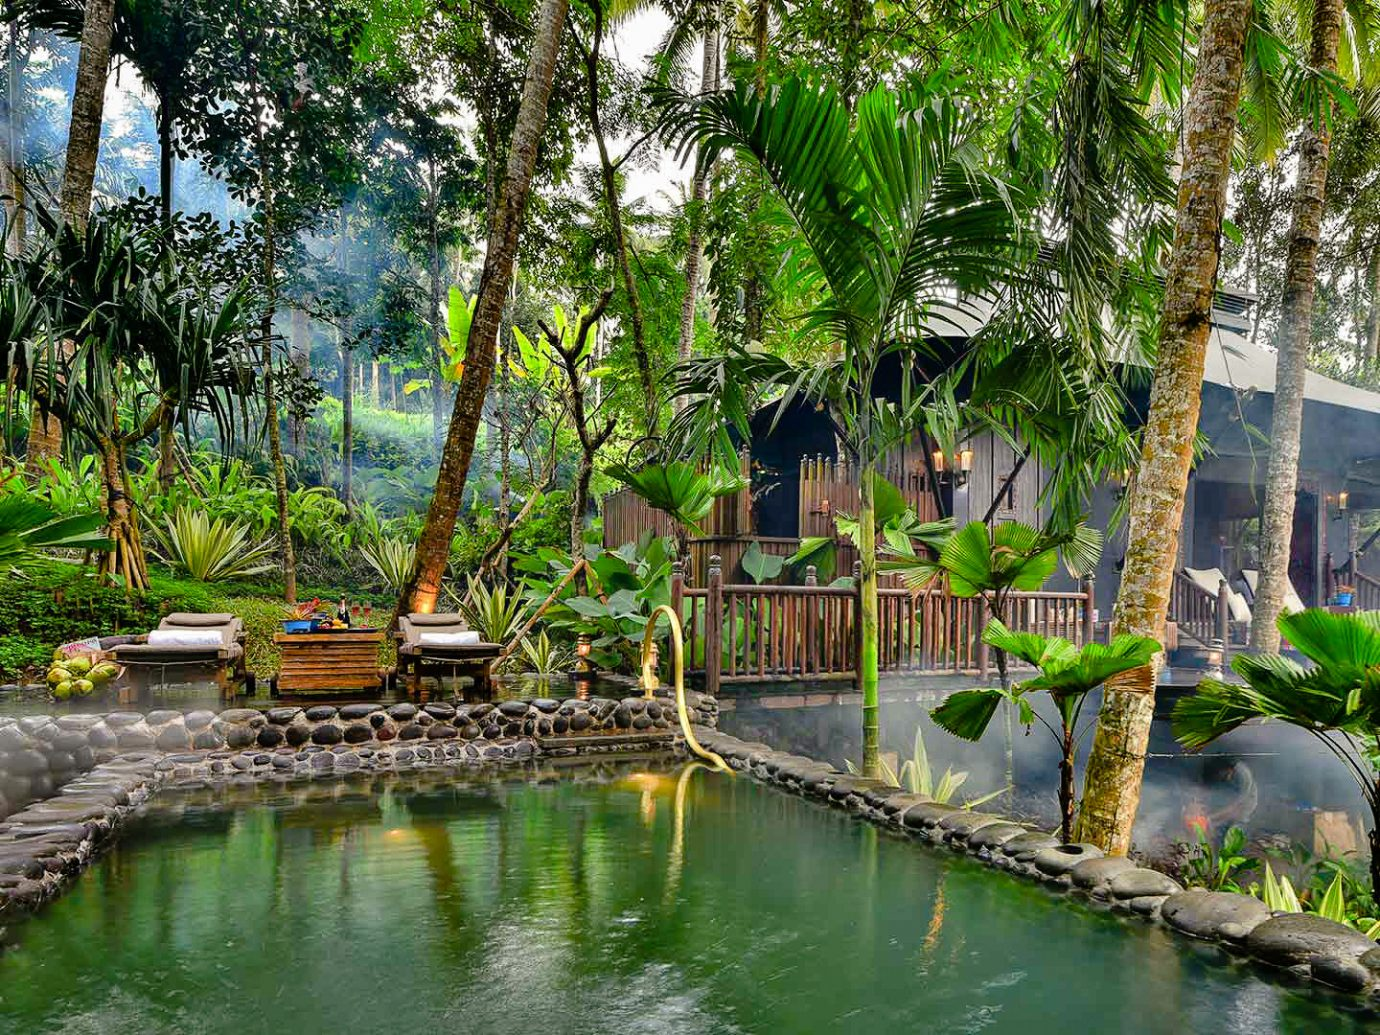 Health + Wellness Hotels Spring Trips Trip Ideas vegetation plant arecales water Resort tree palm tree outdoor structure reflection real estate leisure pond Jungle rainforest landscape botanical garden estate bayou reflecting pool